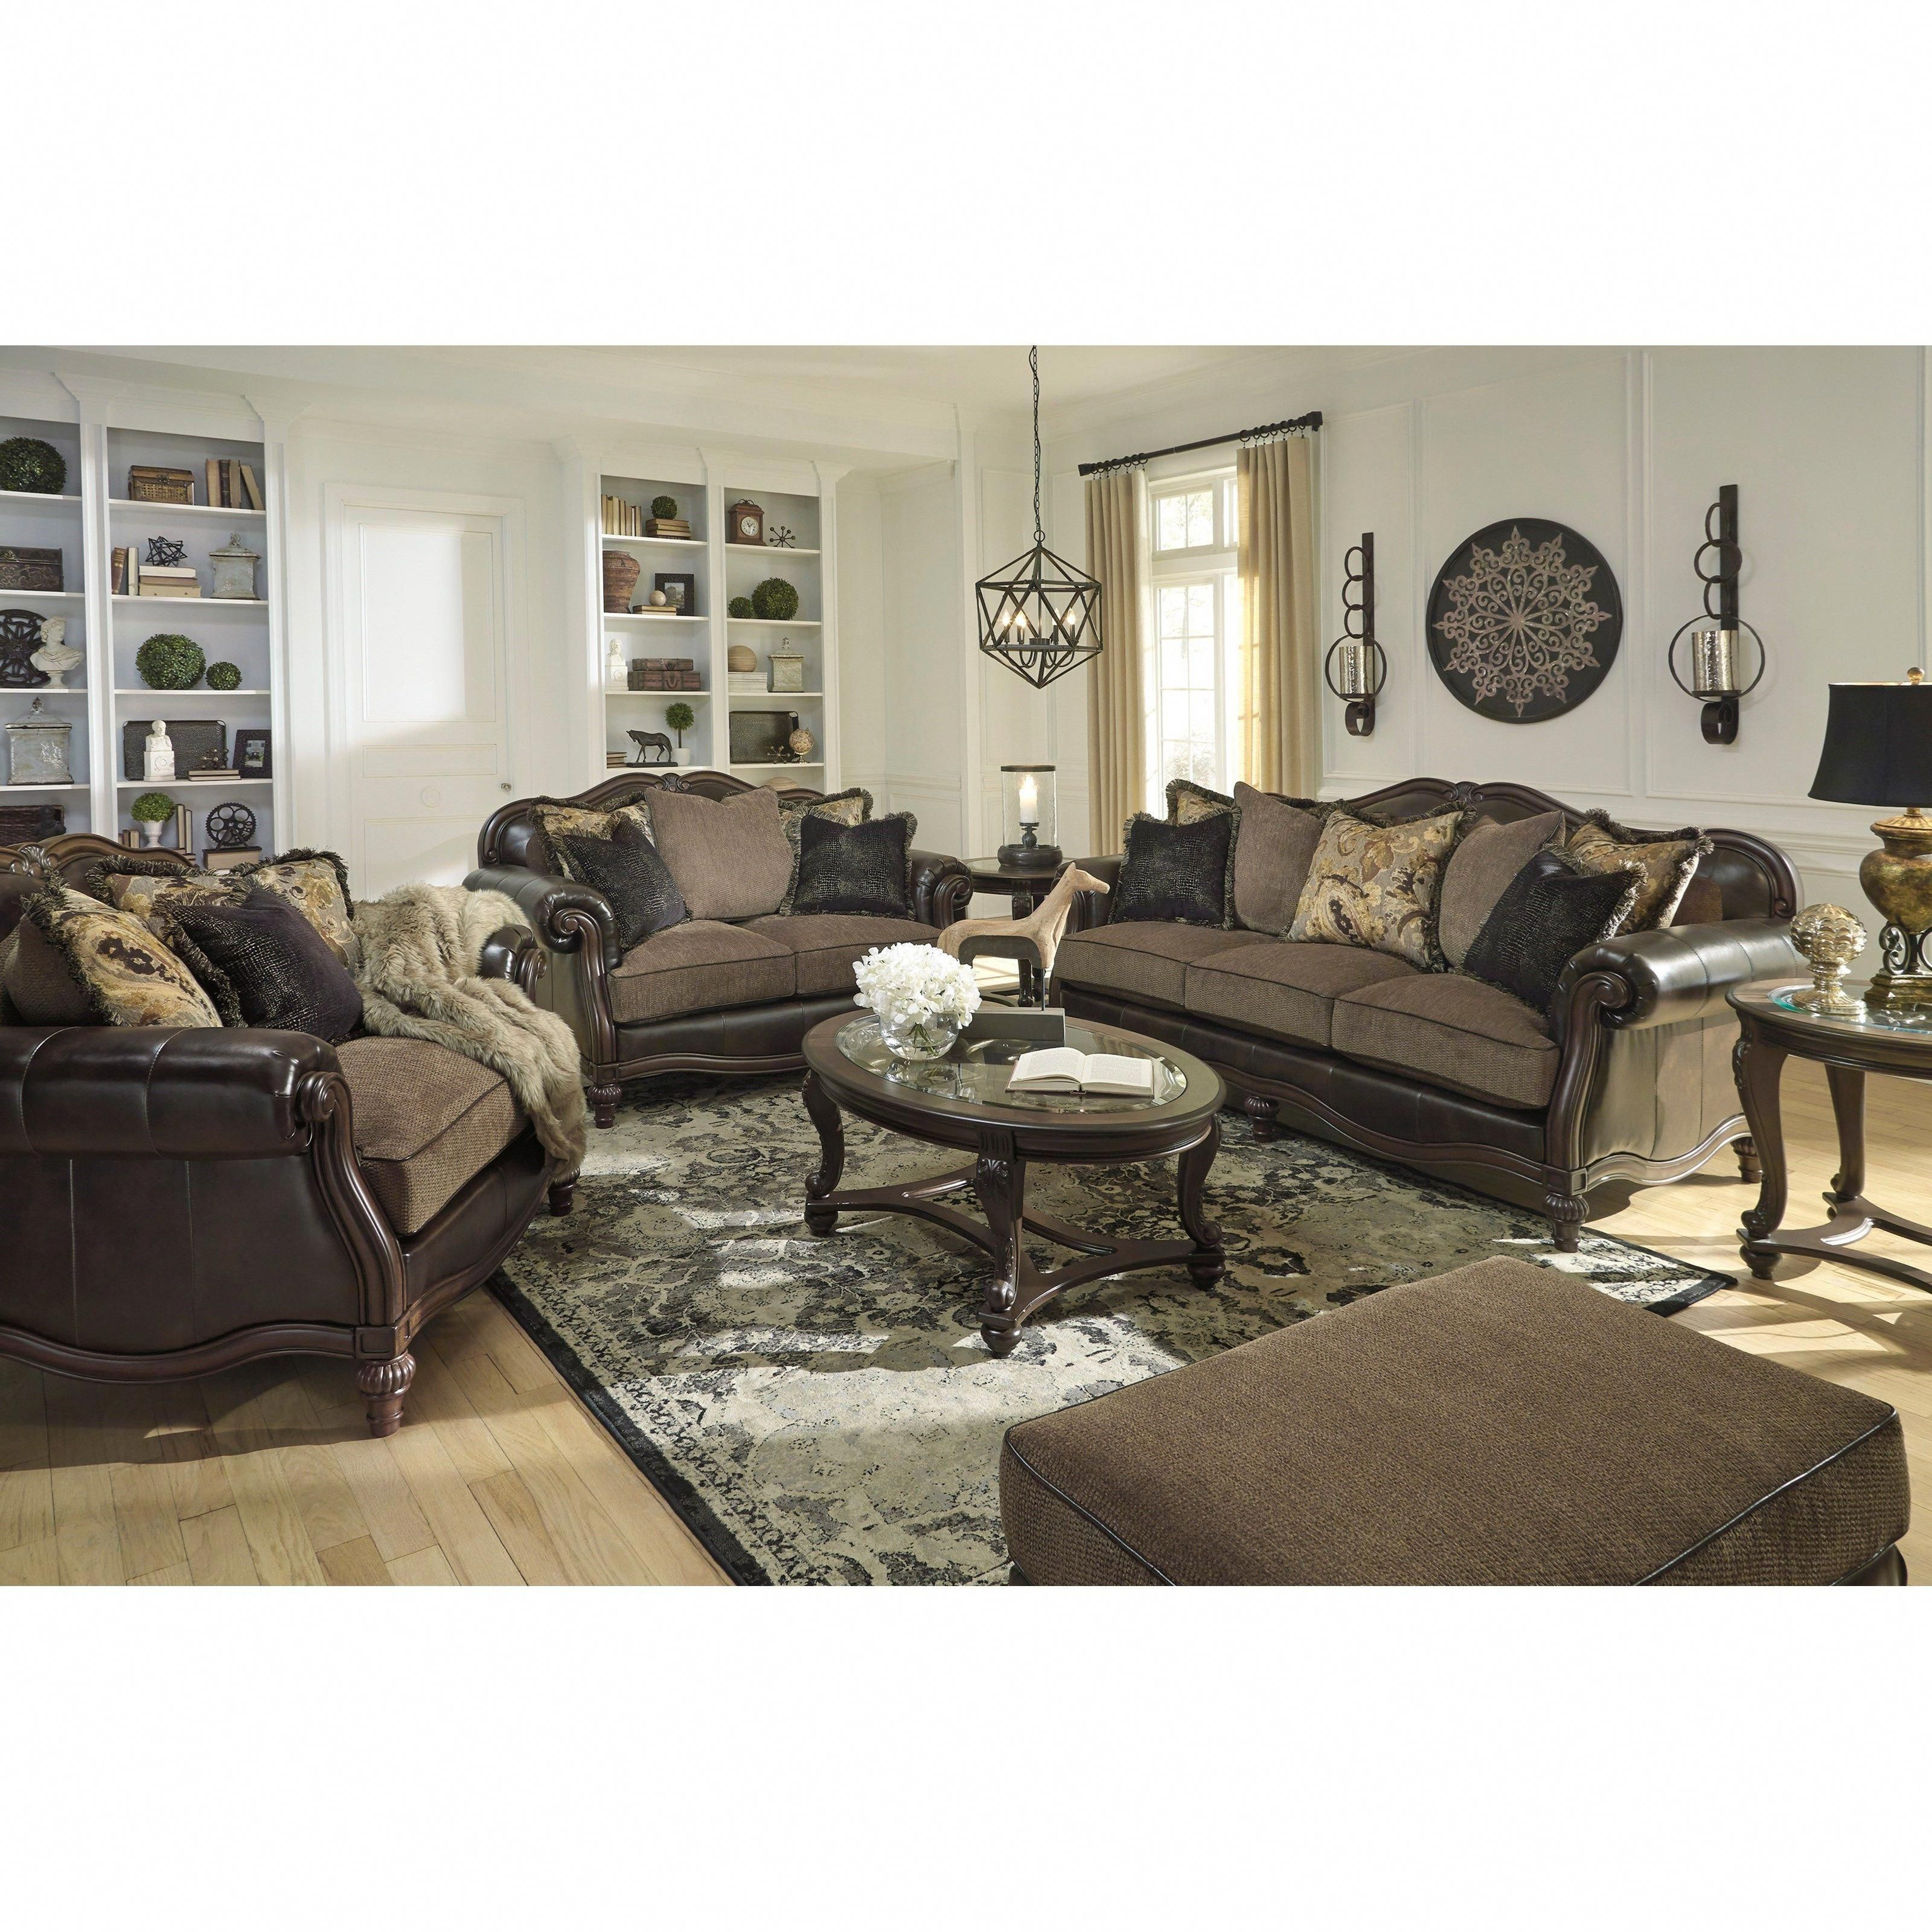 Winnsboro DuraBlend Stationary Living Room Group by Signature Design